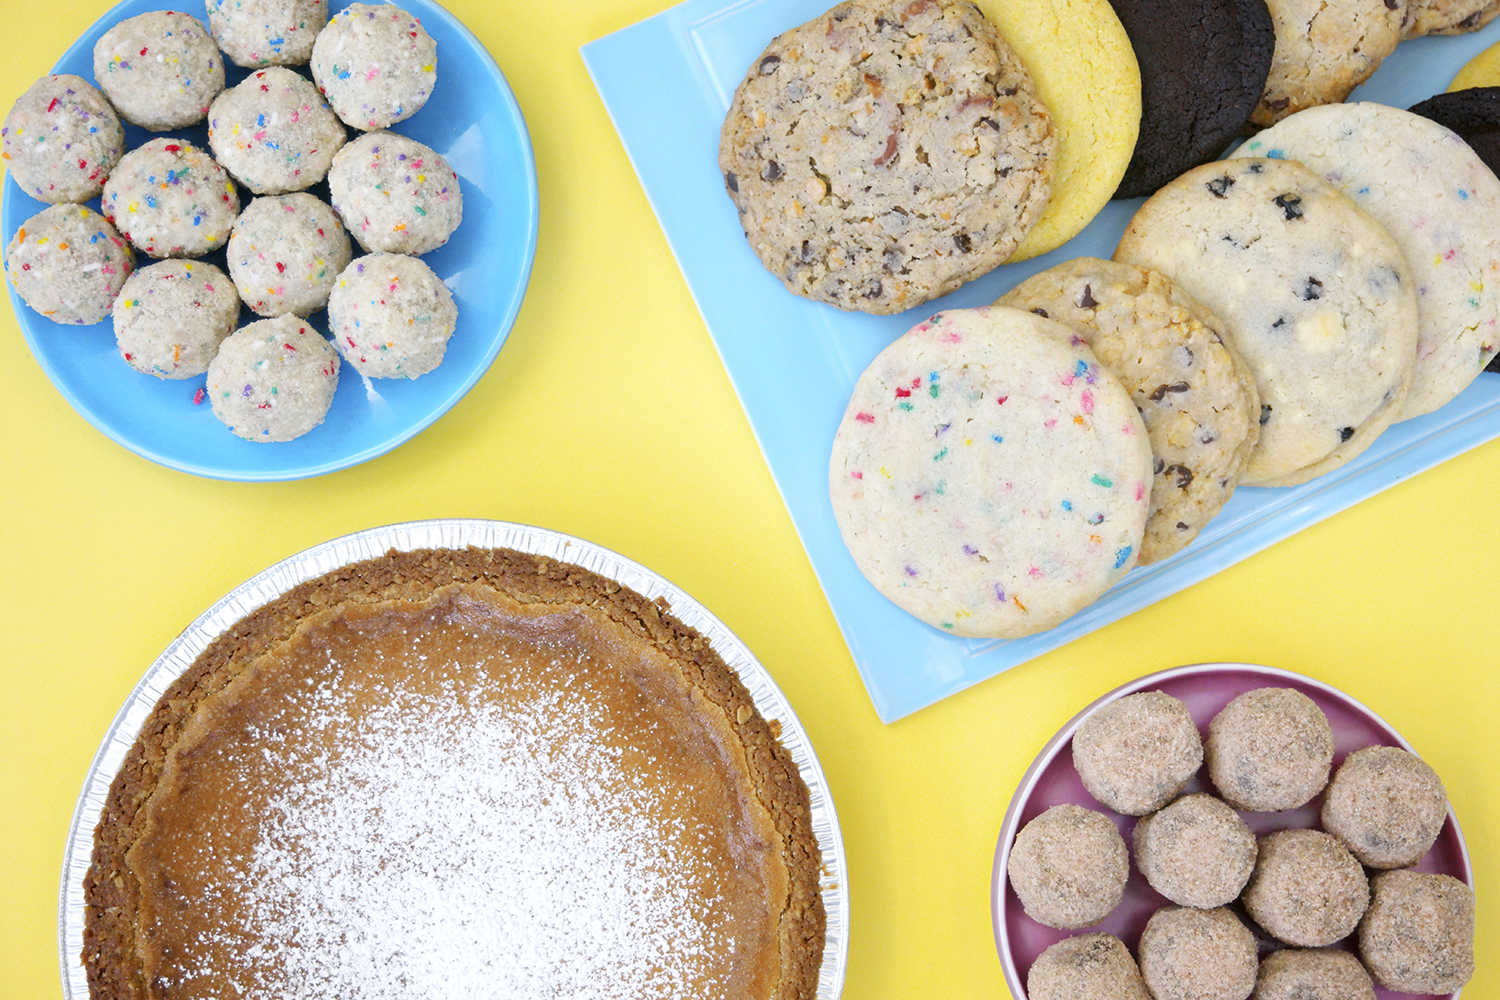 milk bar pie cookies and cake truffles on yellow background in flat lay style